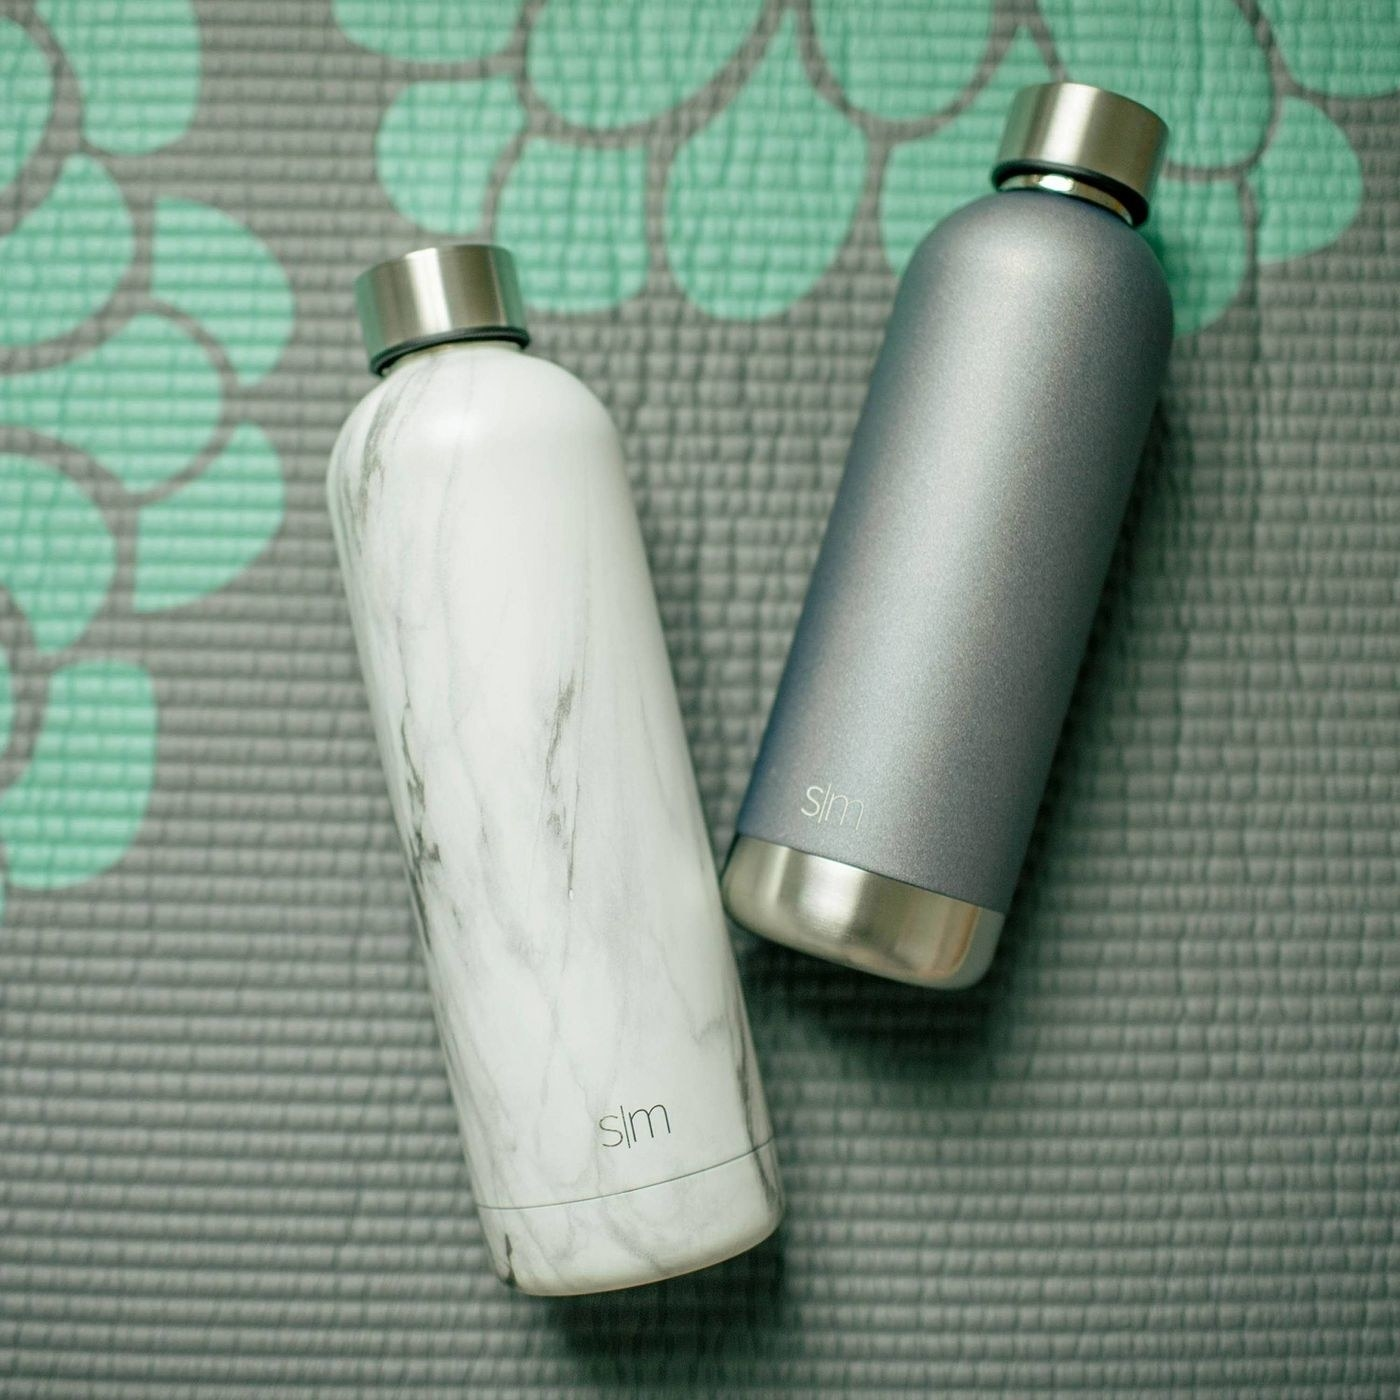 The marble water bottle